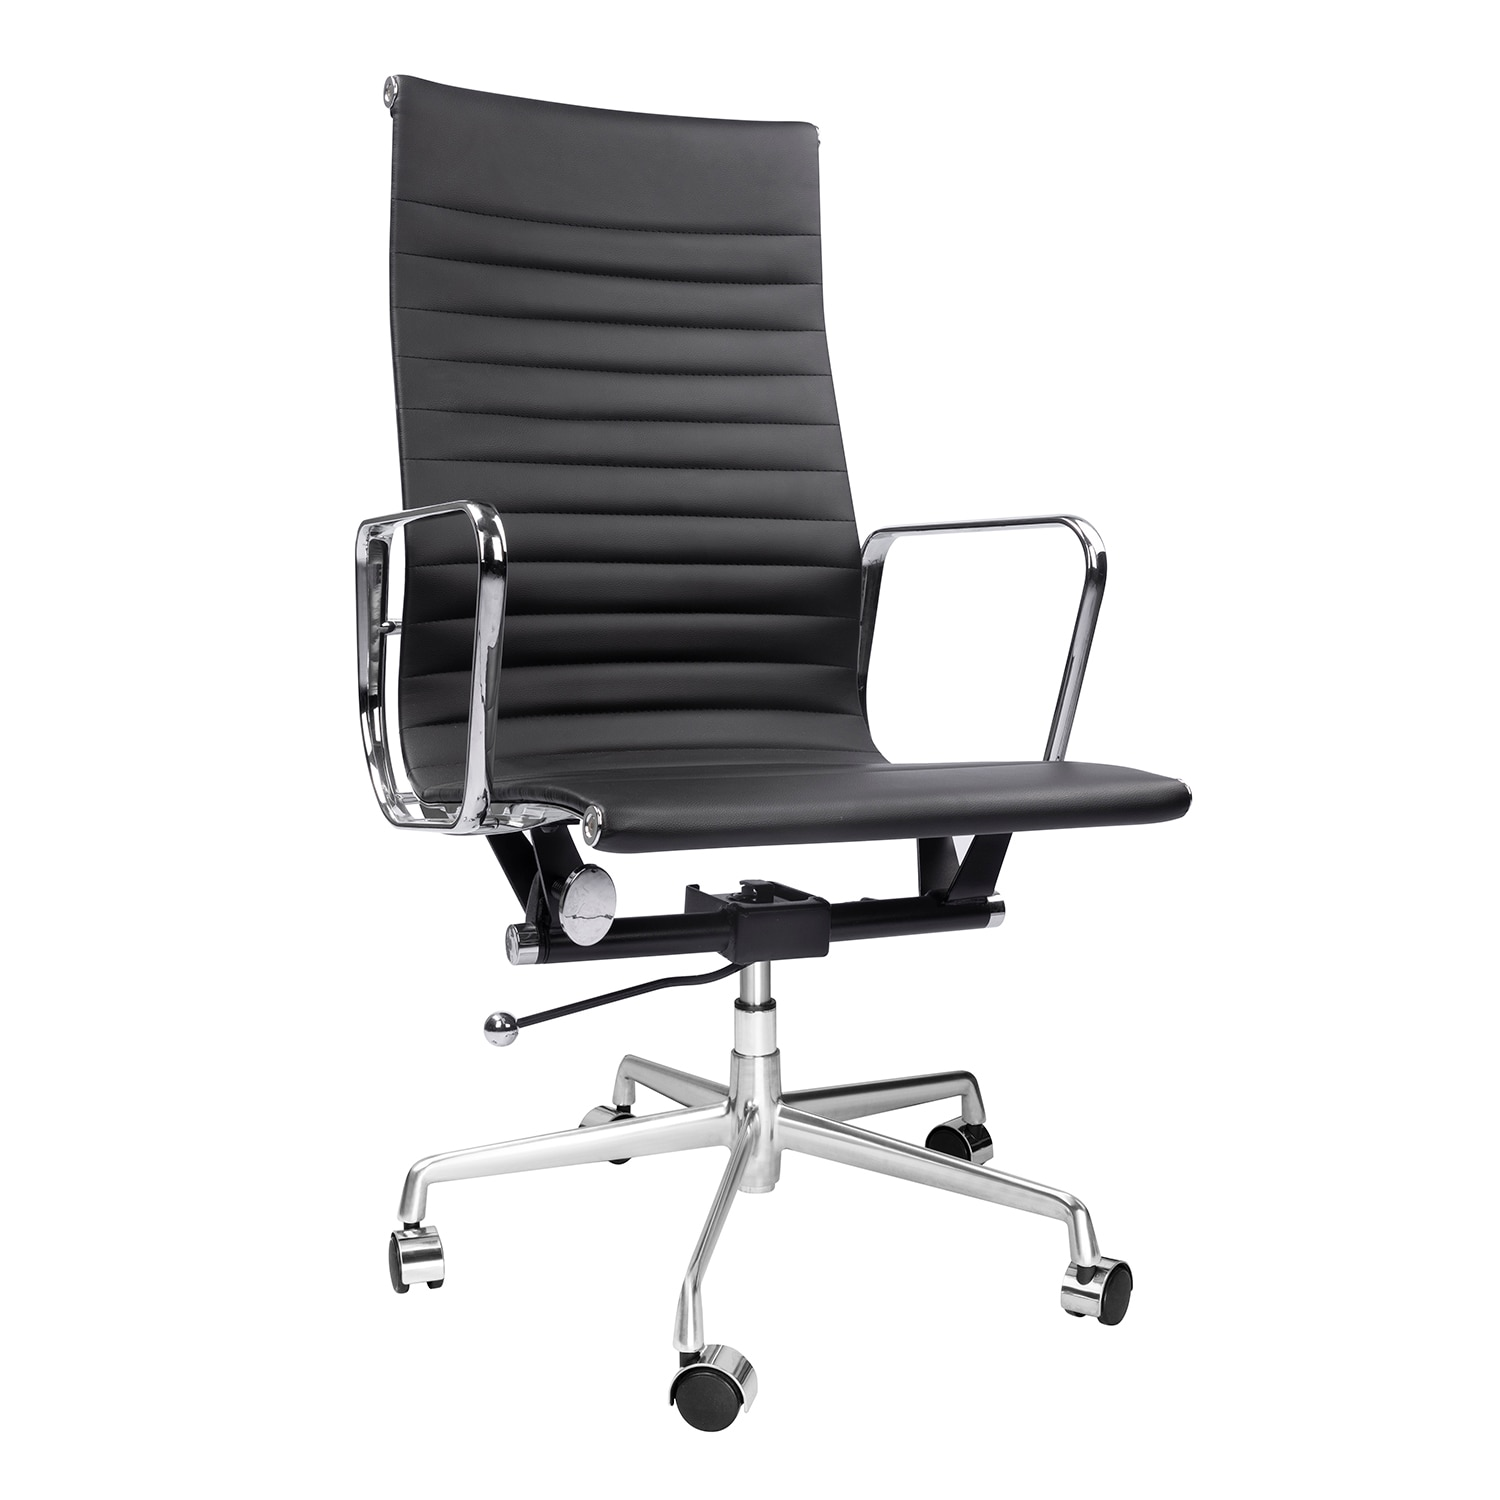 H6a6c63f2af7a41928bc56220b1c03c7dQ - High Back Aluminium Group Office Chair Replica Swivel Chair with Armrests Chromed Base Gaming Chair for Office Meeting Room